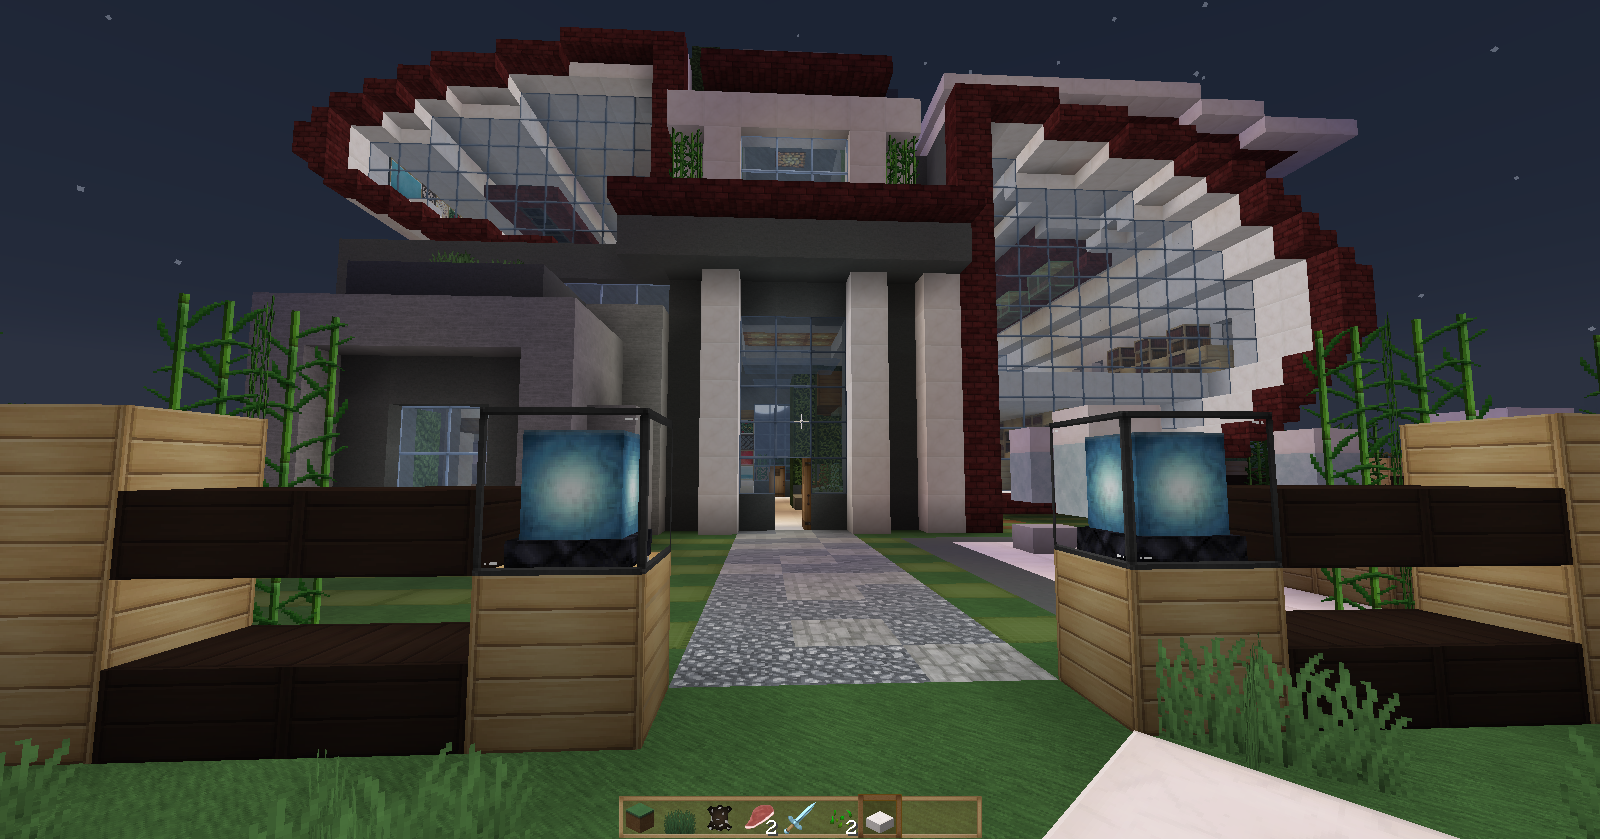 Minecraft casas modernas buscar con google ideas para for Casas modernas minecraft faciles